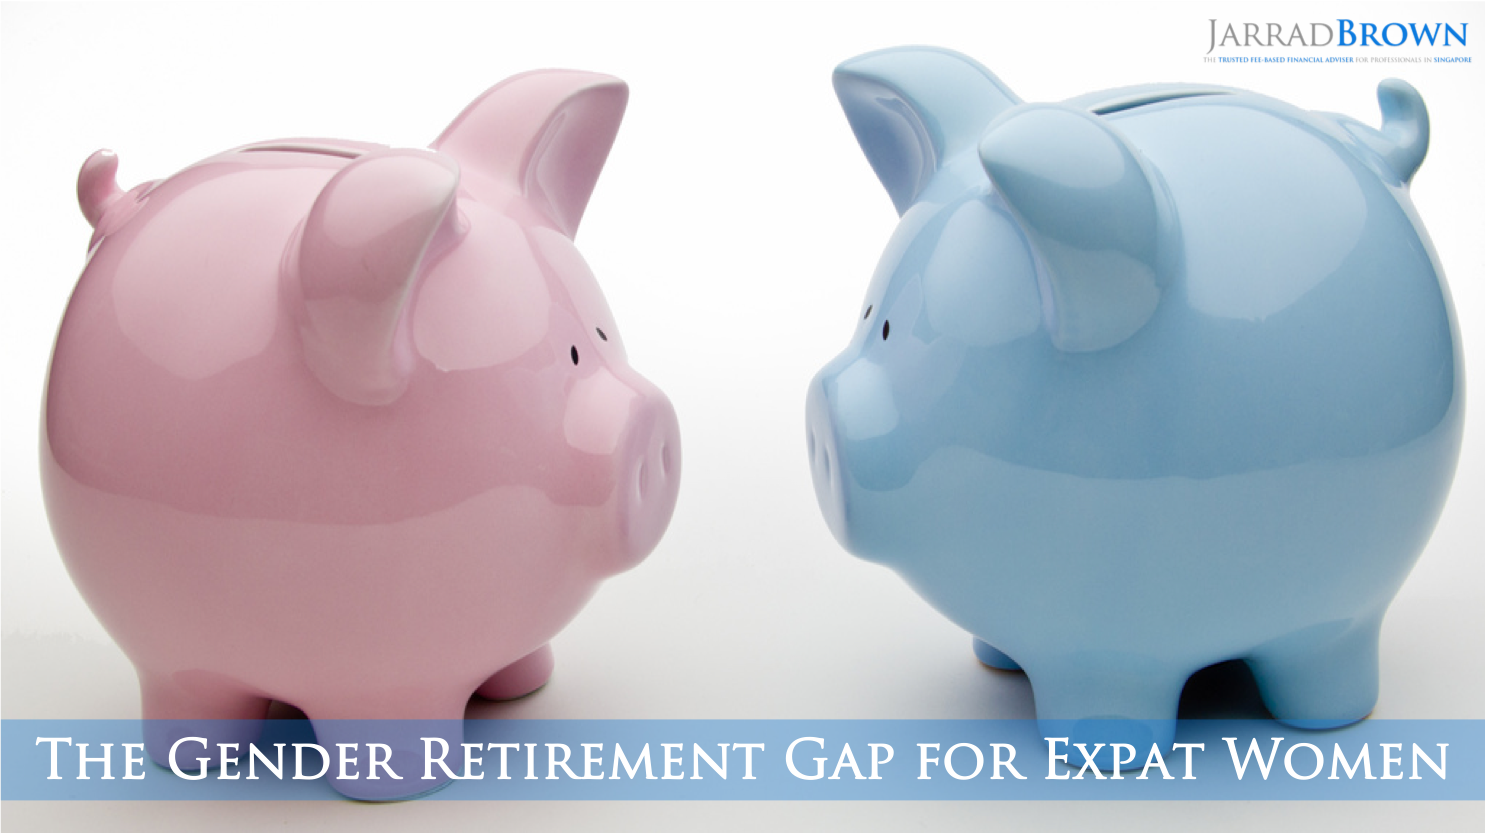 The Gender Retirement Gap for Expat Women - Jarrad Brown - Financial Planner to Aussie Expats in Singapore